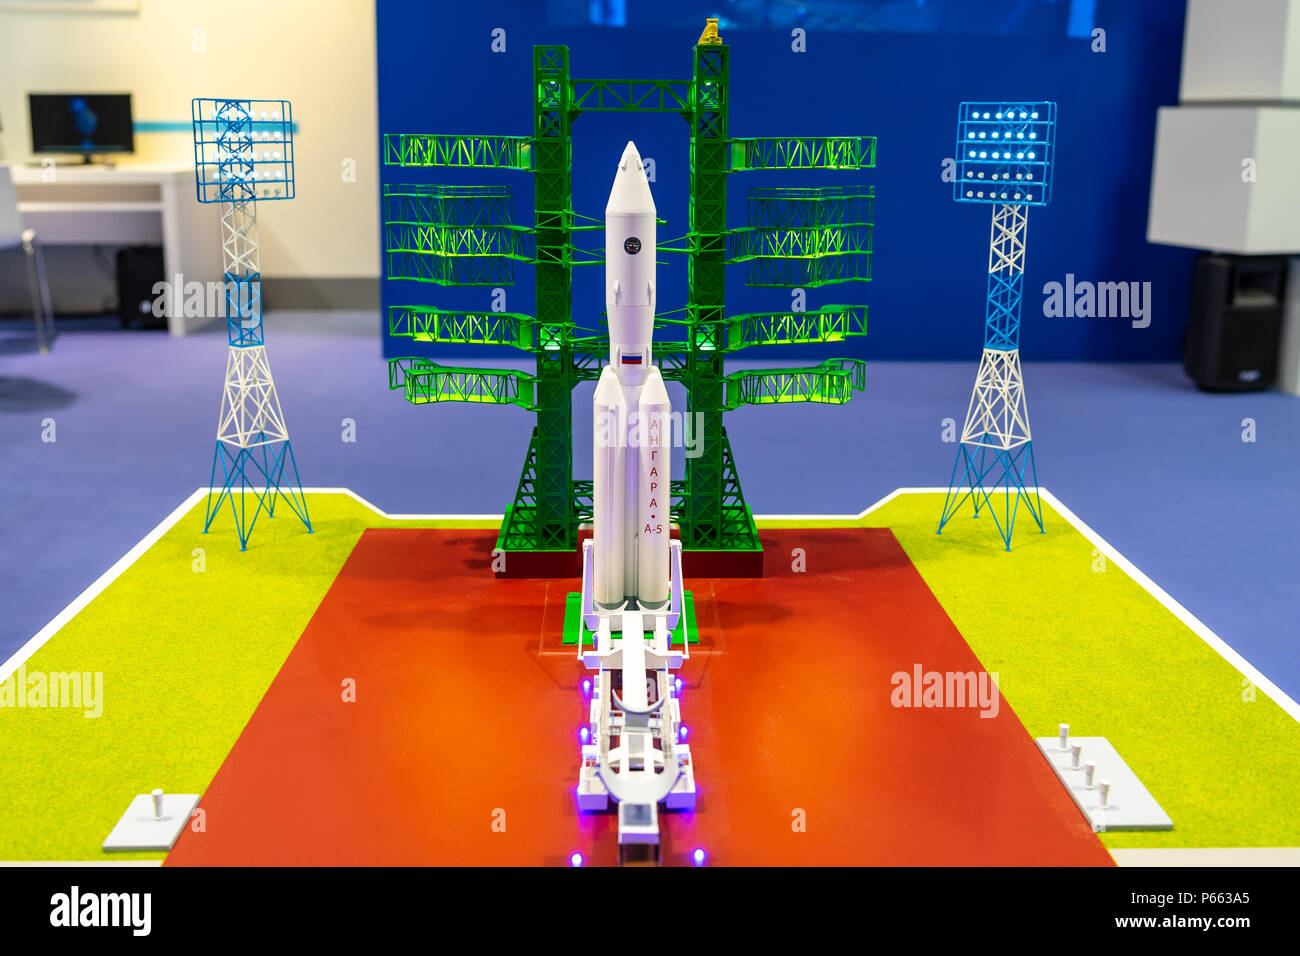 Space Pavilion. Stand of Roscosmos. The plan for a new spaceport Vostochny and an Angara-5 missile carrier model. Exhibition ILA Berlin Air Show 2018 - Stock Image